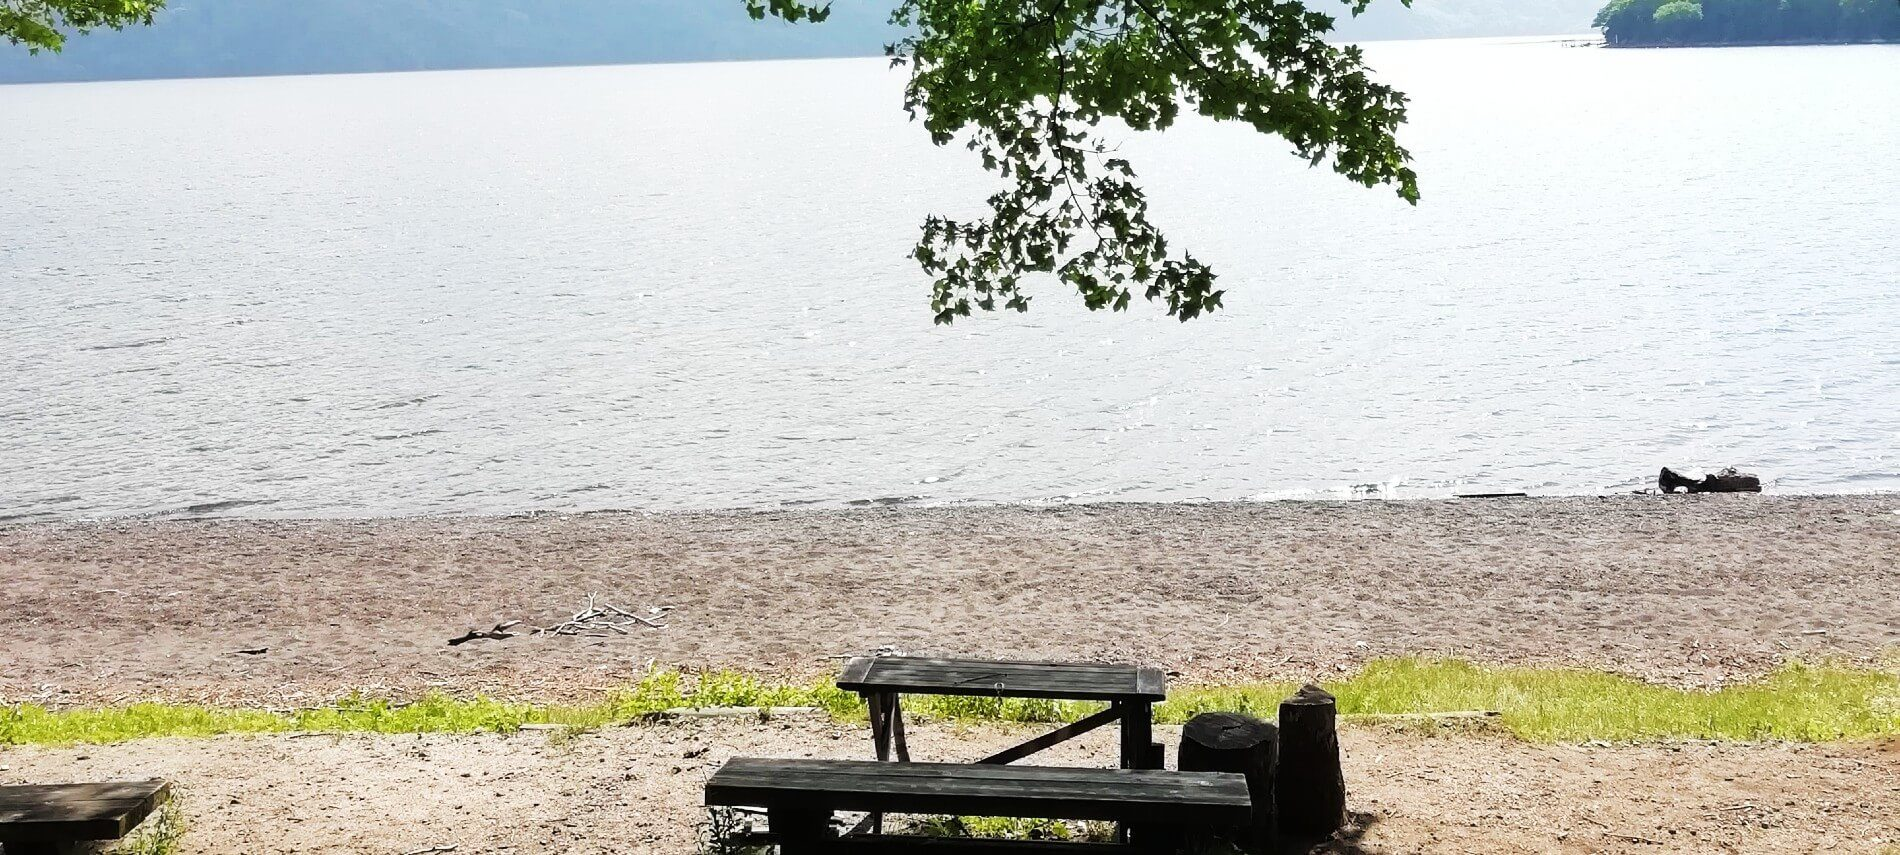 Wooden picnic bench on a deserted beach area in front of large body of water